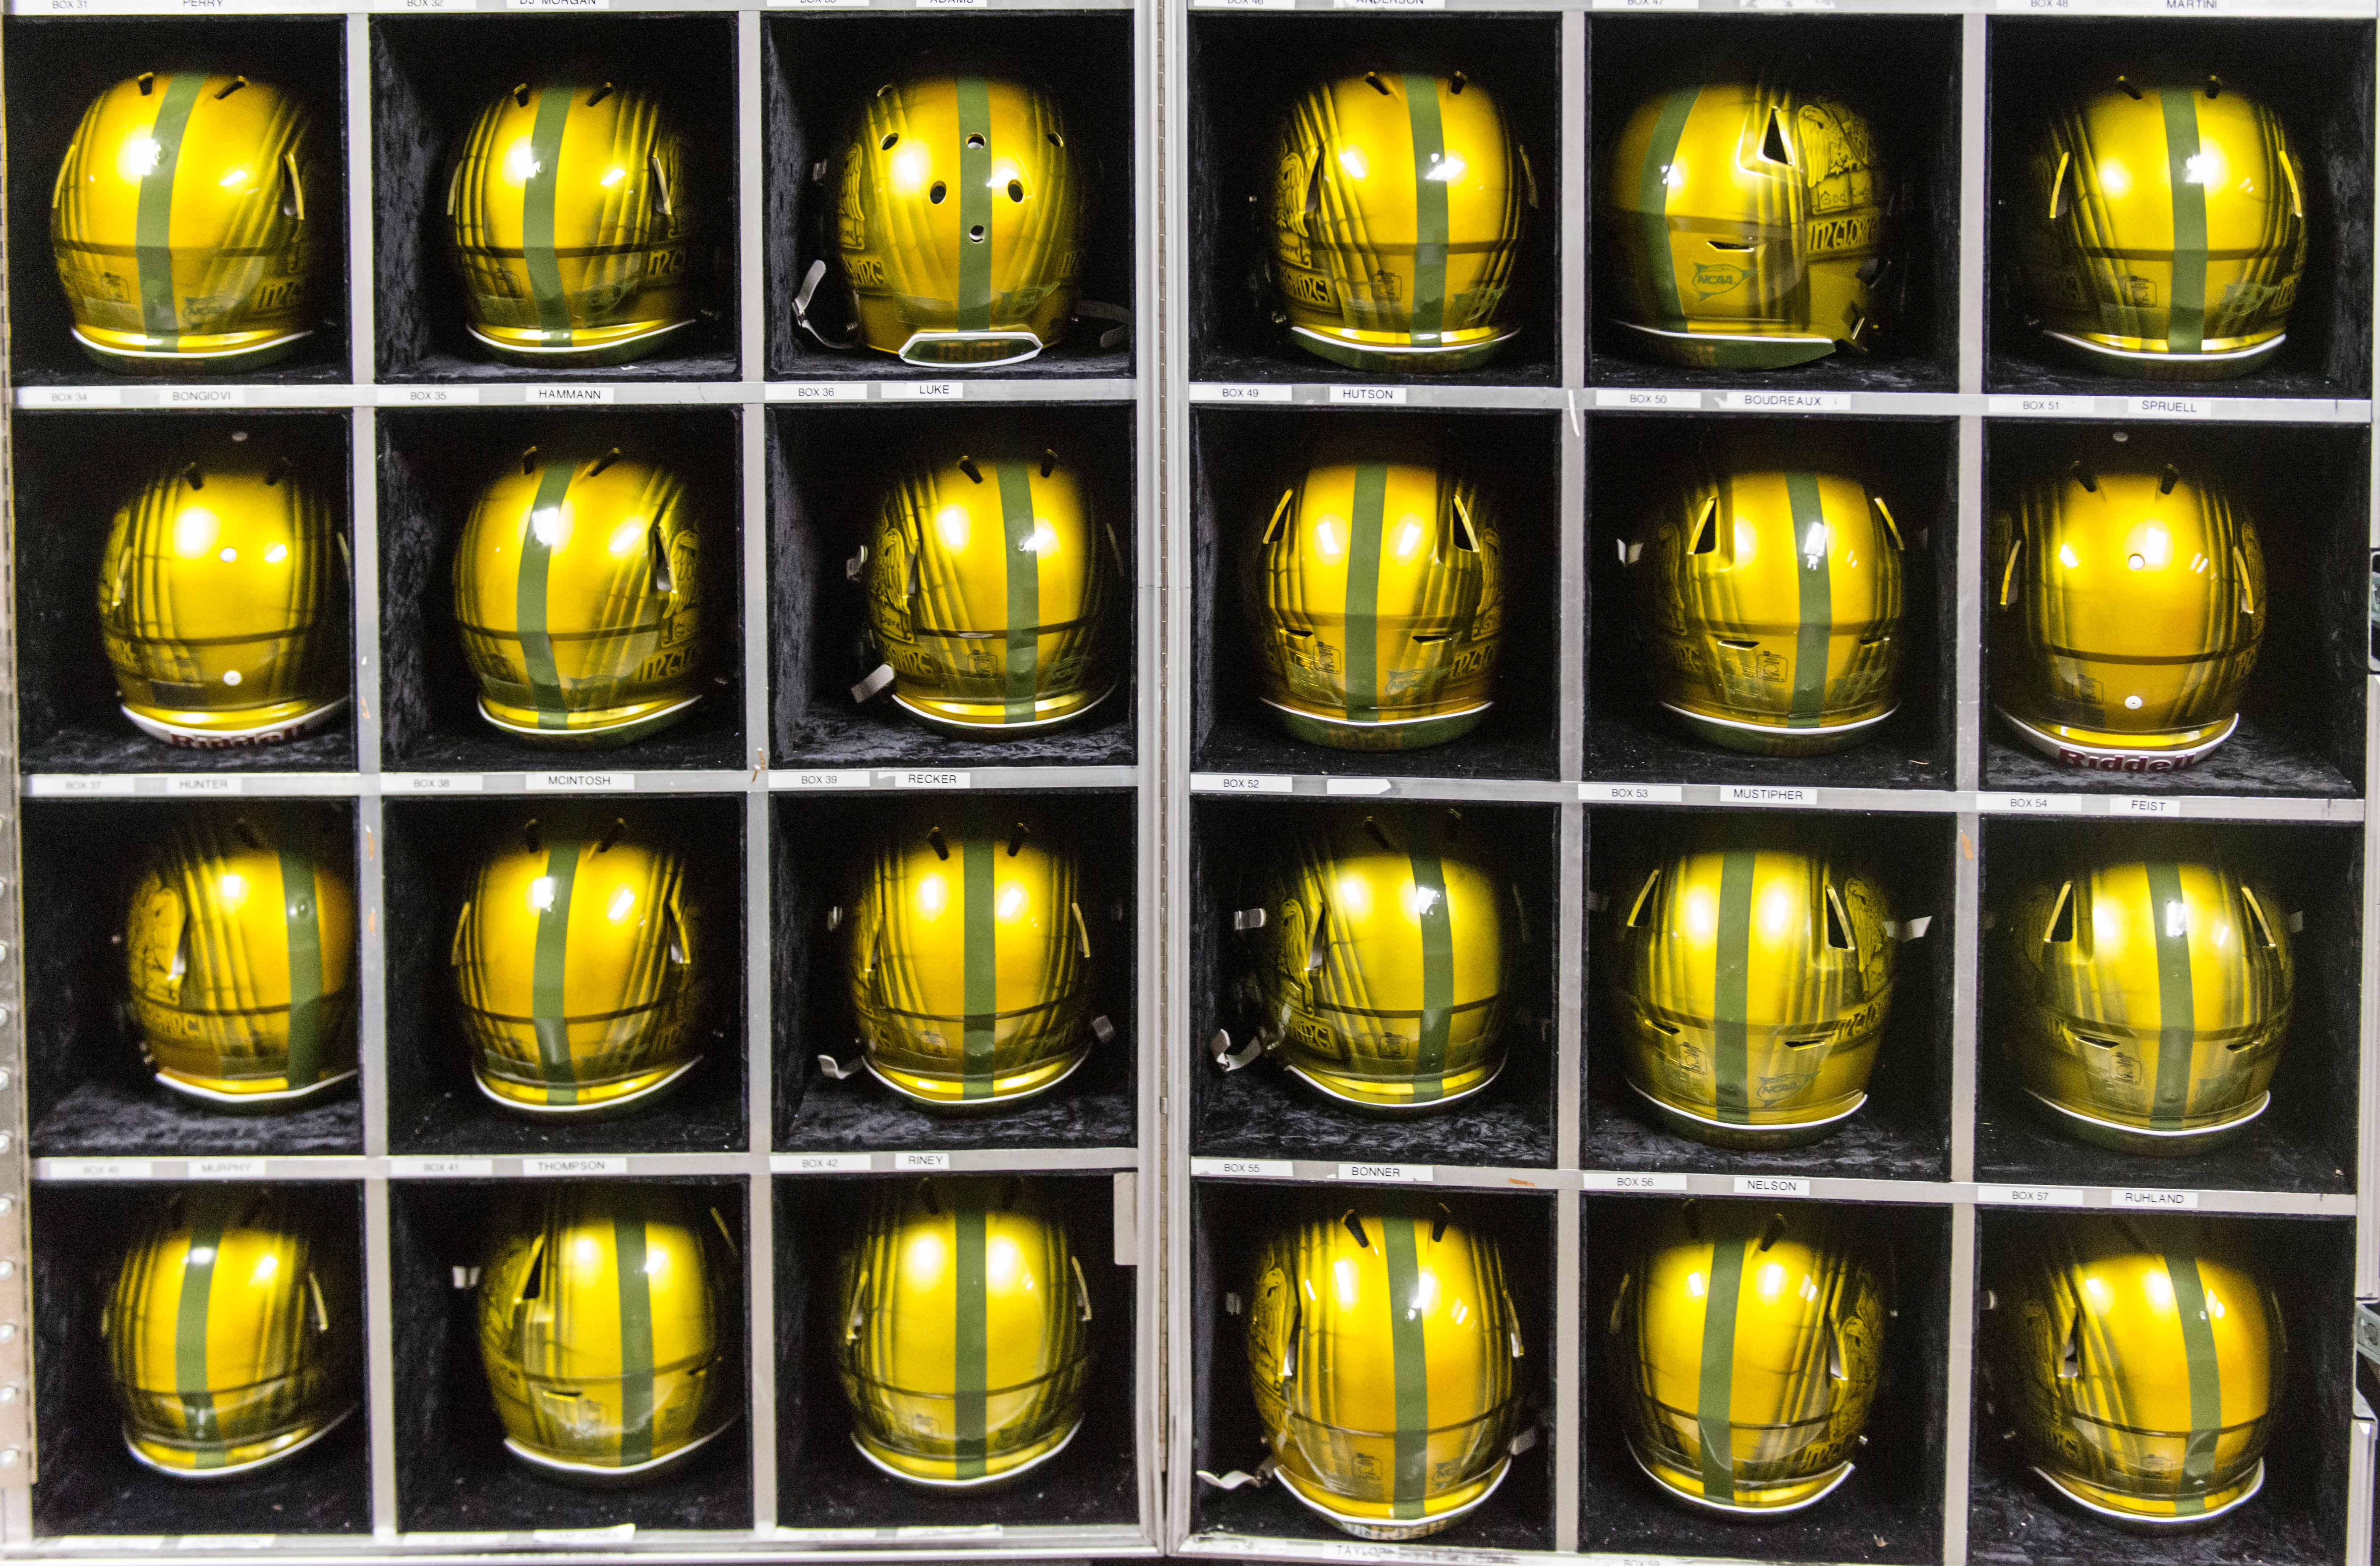 68c3fdba4 Notre Dame s Shamrock series helmets sit on display for Notre Dame s  matchup against Army in San